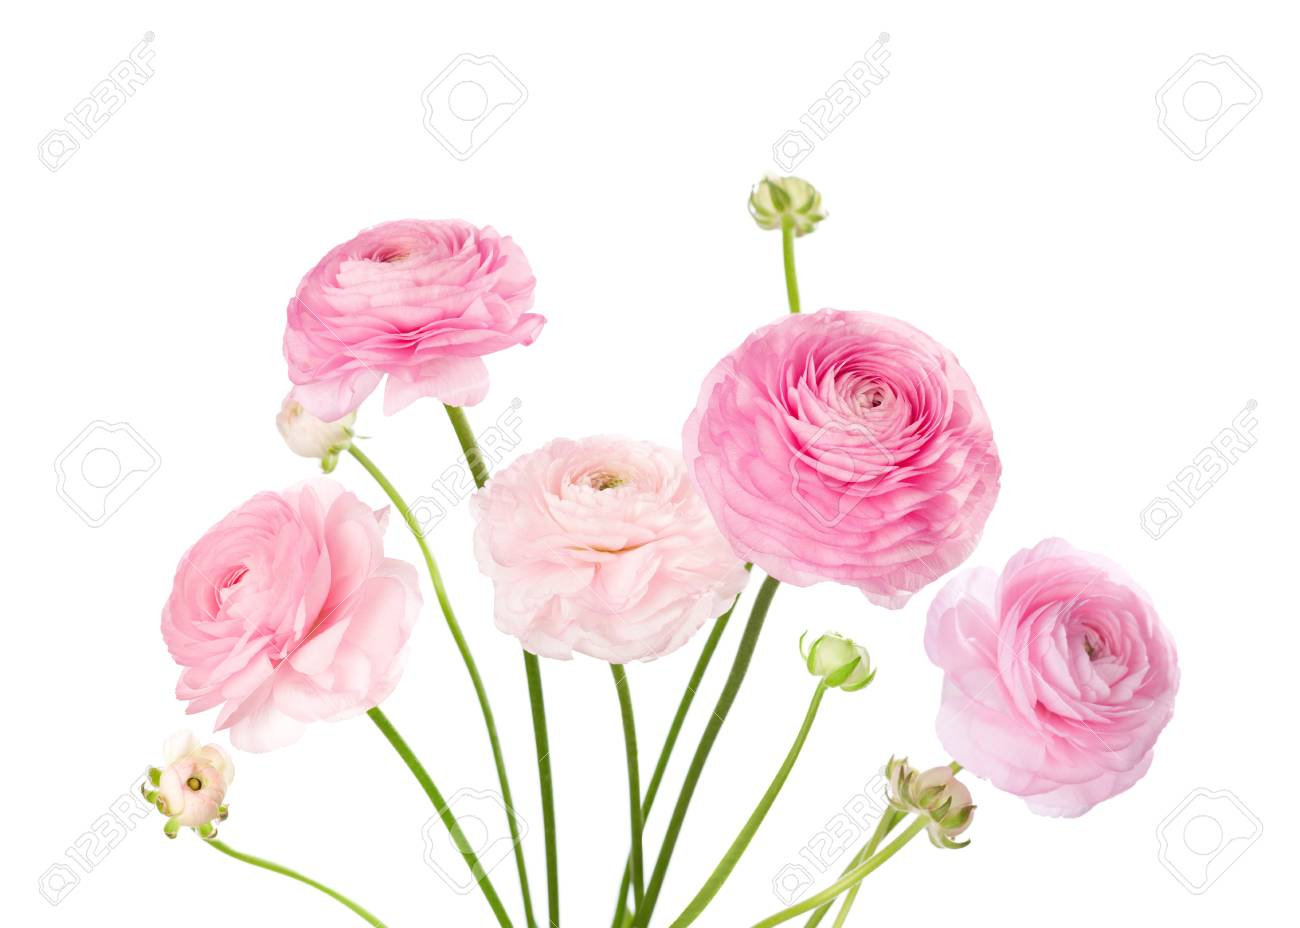 Light Pink Flowers Isolated On White Ranunculus Stock Photo